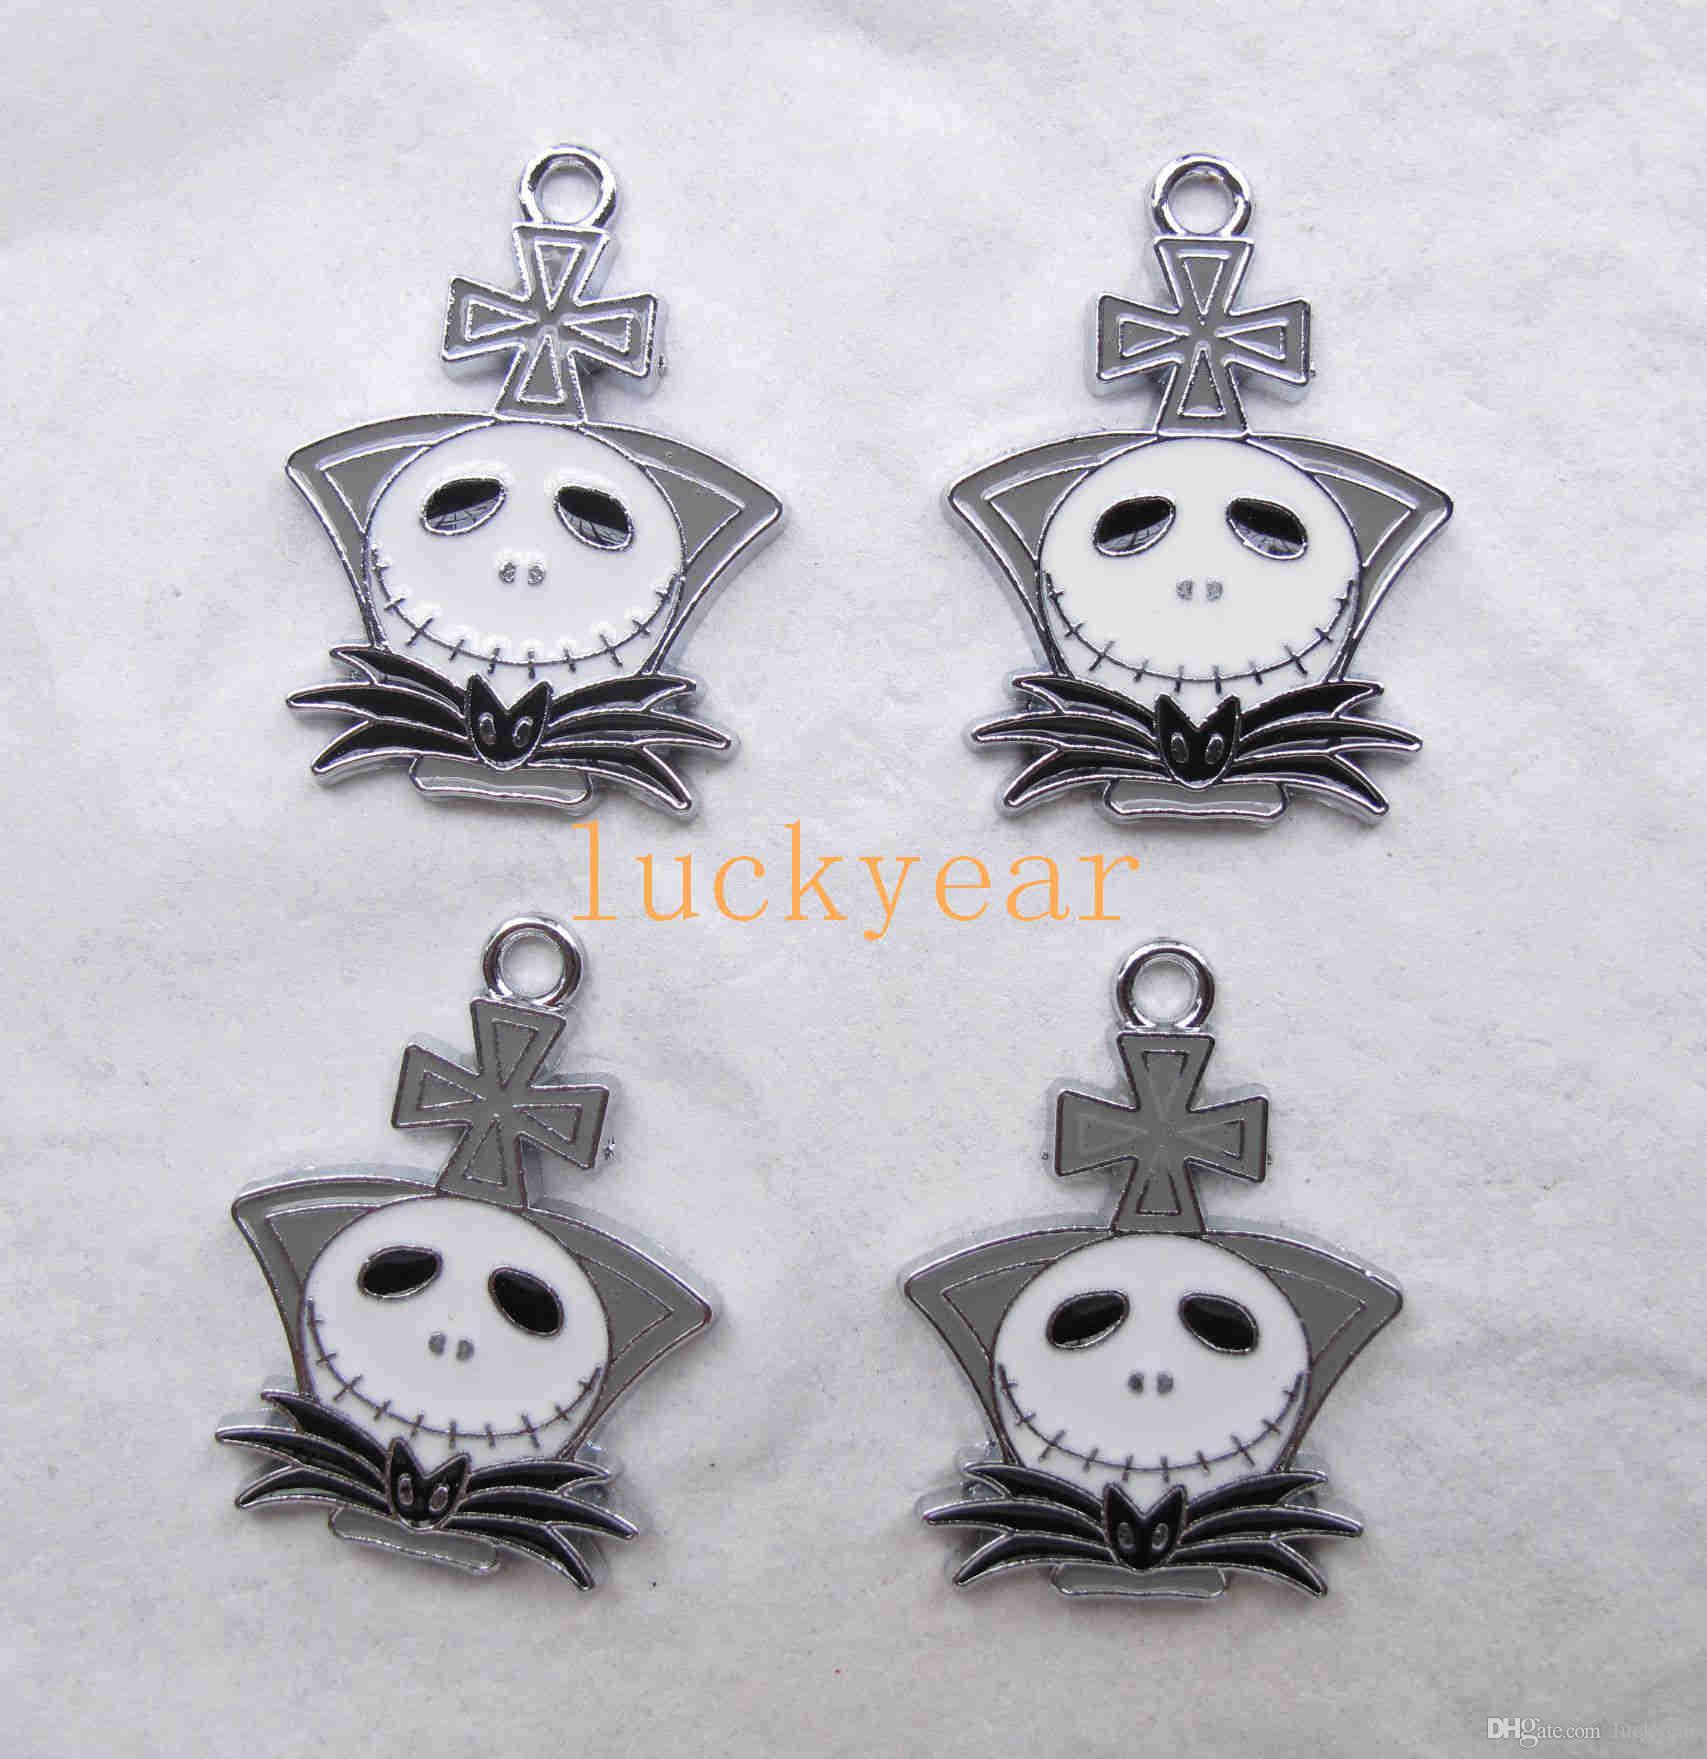 2018 new the nightmare before christmas diy jewelry making metal charm pendant jewelry making party gifts b77 from luckyear 024 dhgatecom - Making Of Nightmare Before Christmas